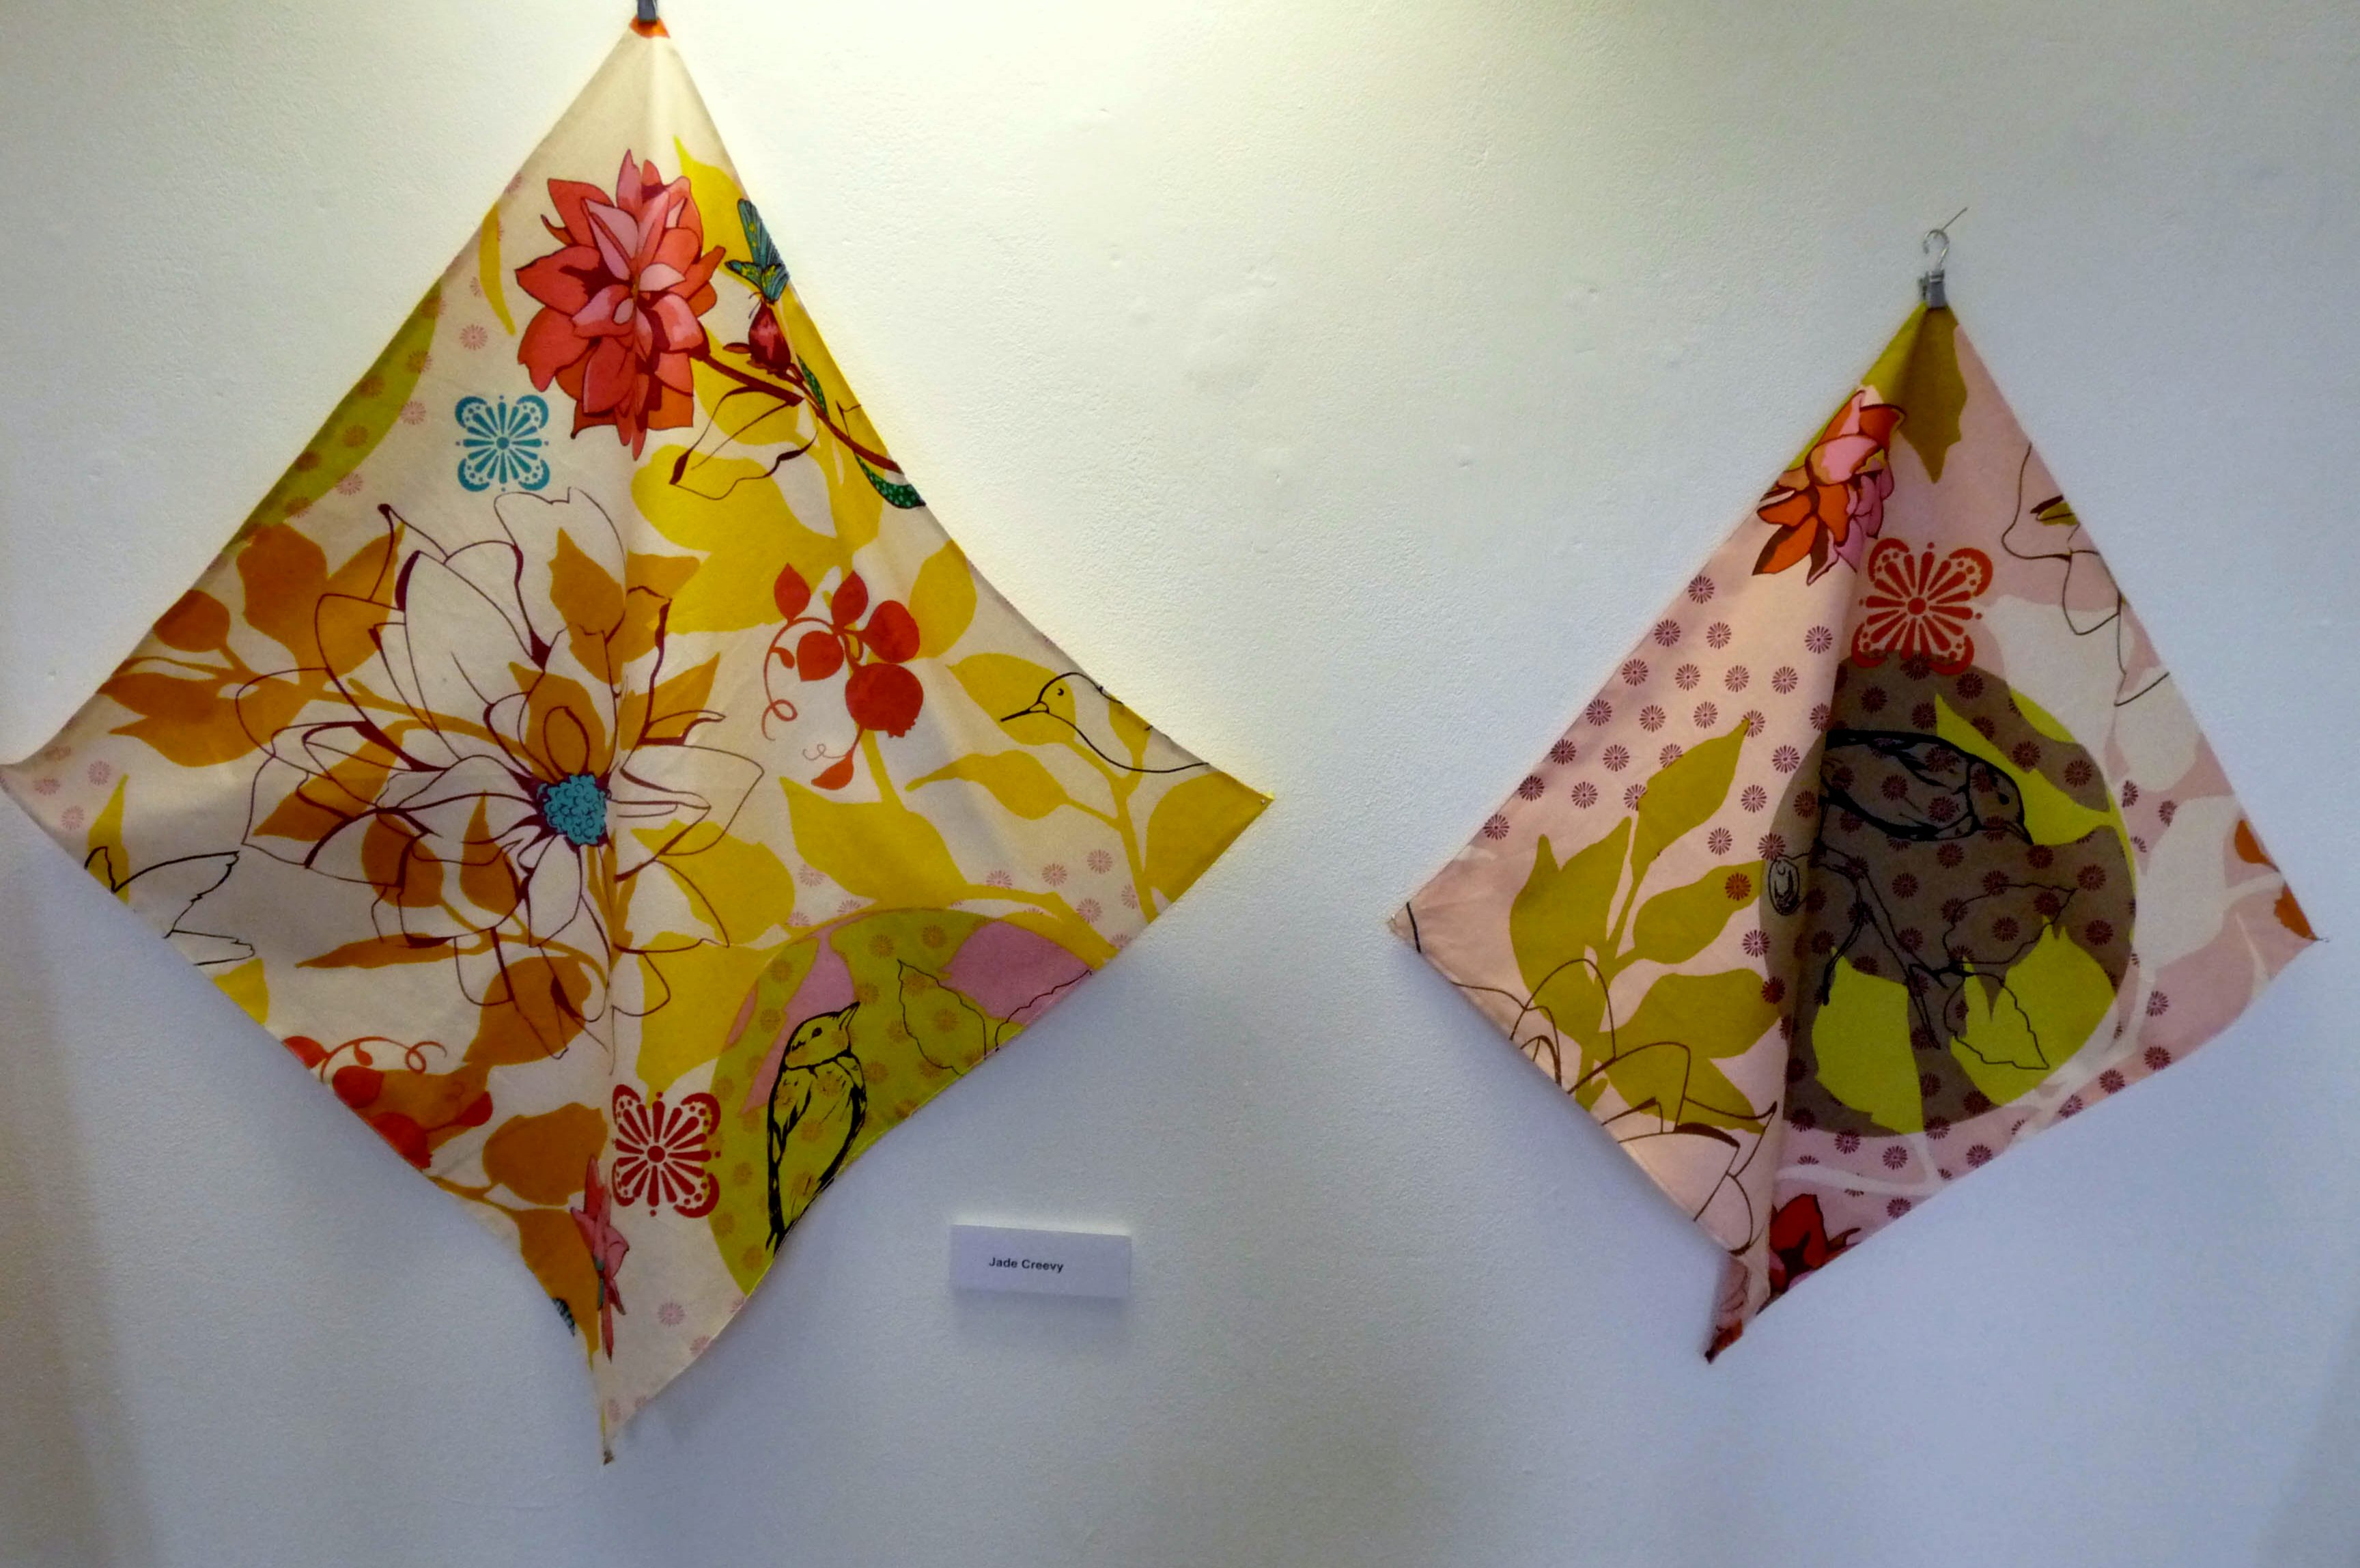 screen printed textiles by Emma Tansey, based on the work of Robin and Lucienne Day, paper cut overlaid on printed textile by Nicola Wallace, Liverpool Hope Univ Art Degree Show 2014